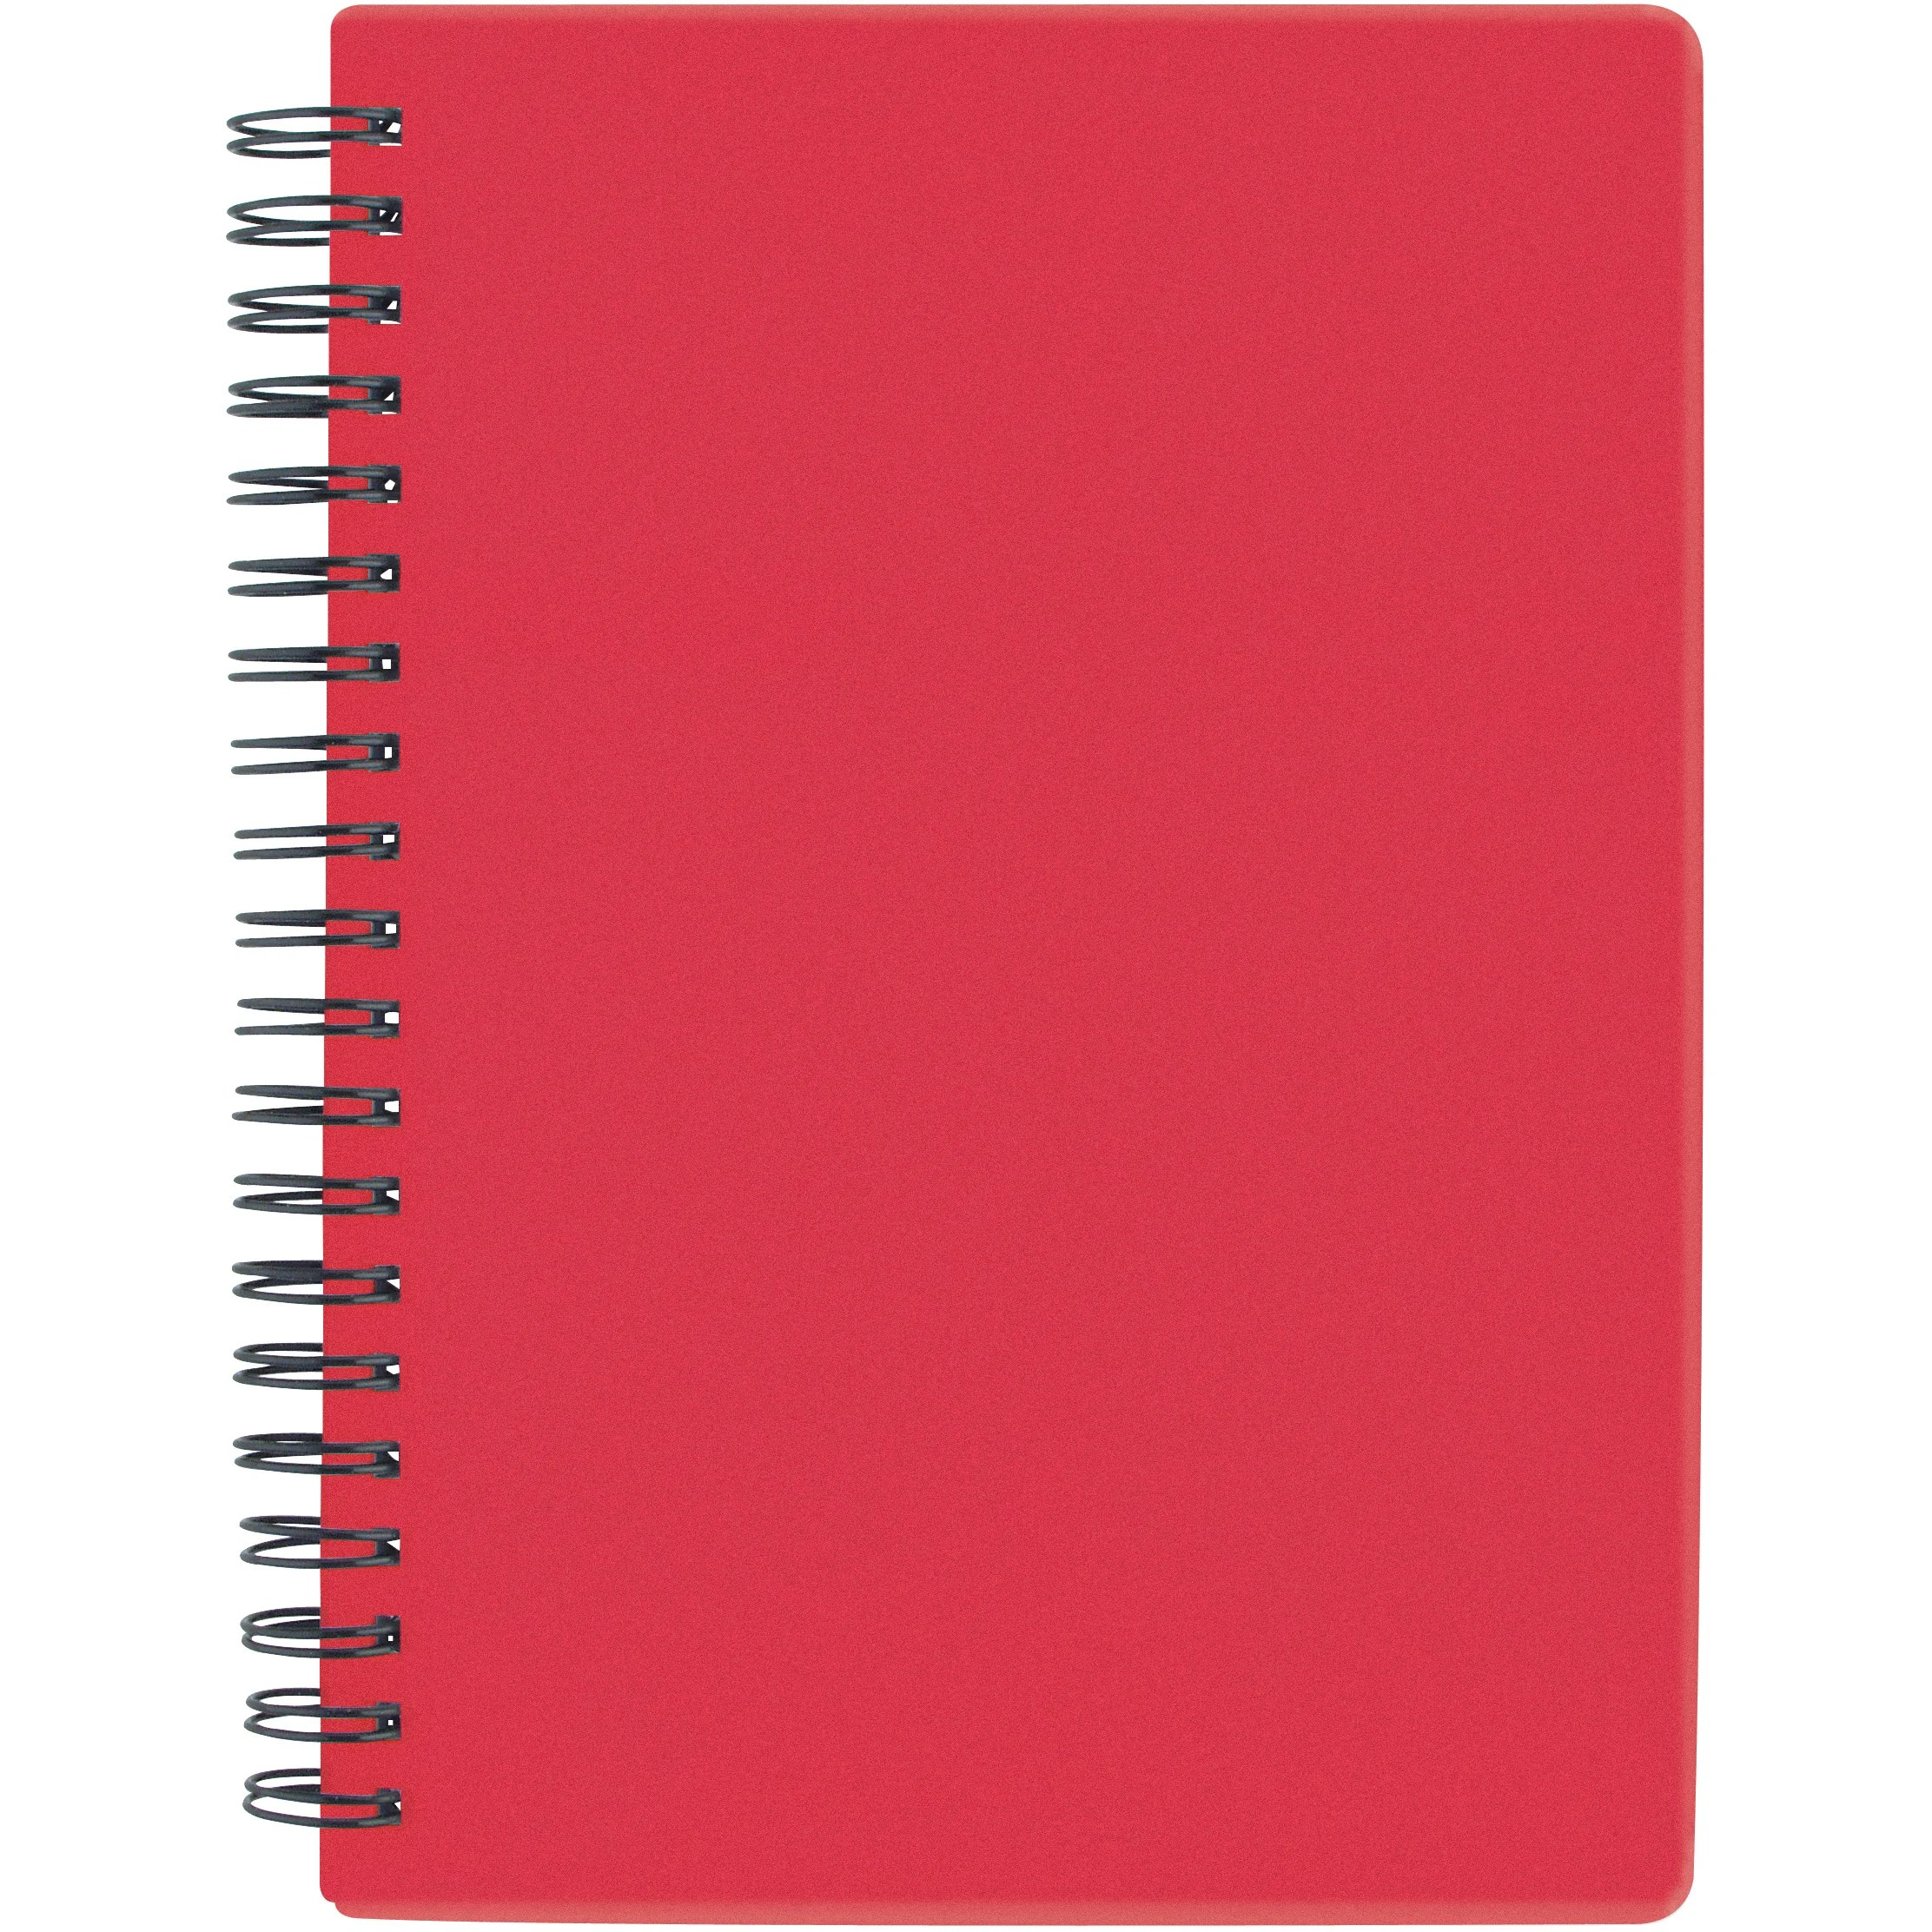 Cute Notepad Wallpaper Spiral Bound Notebook Personalized Notepads 1 54 Ea